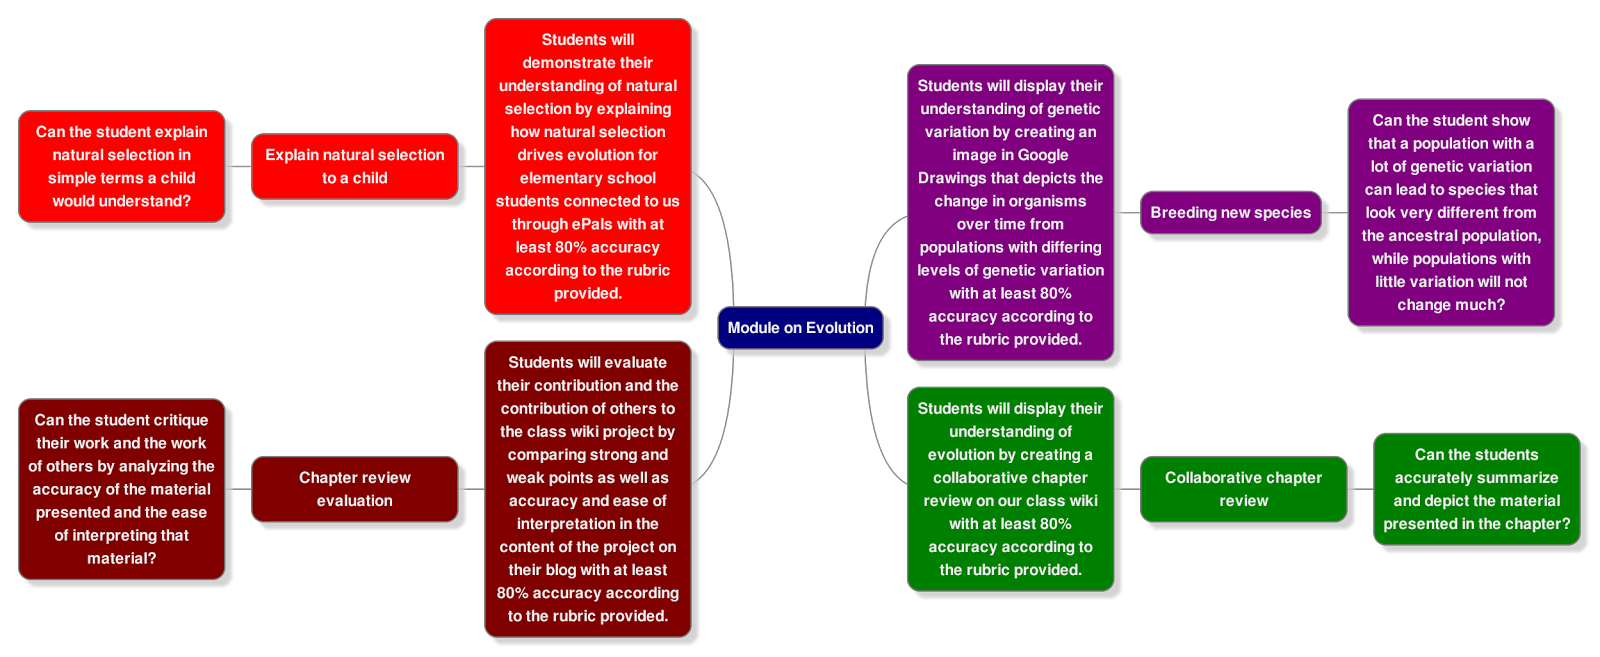 Concept map of learning objectives for a module on evolution